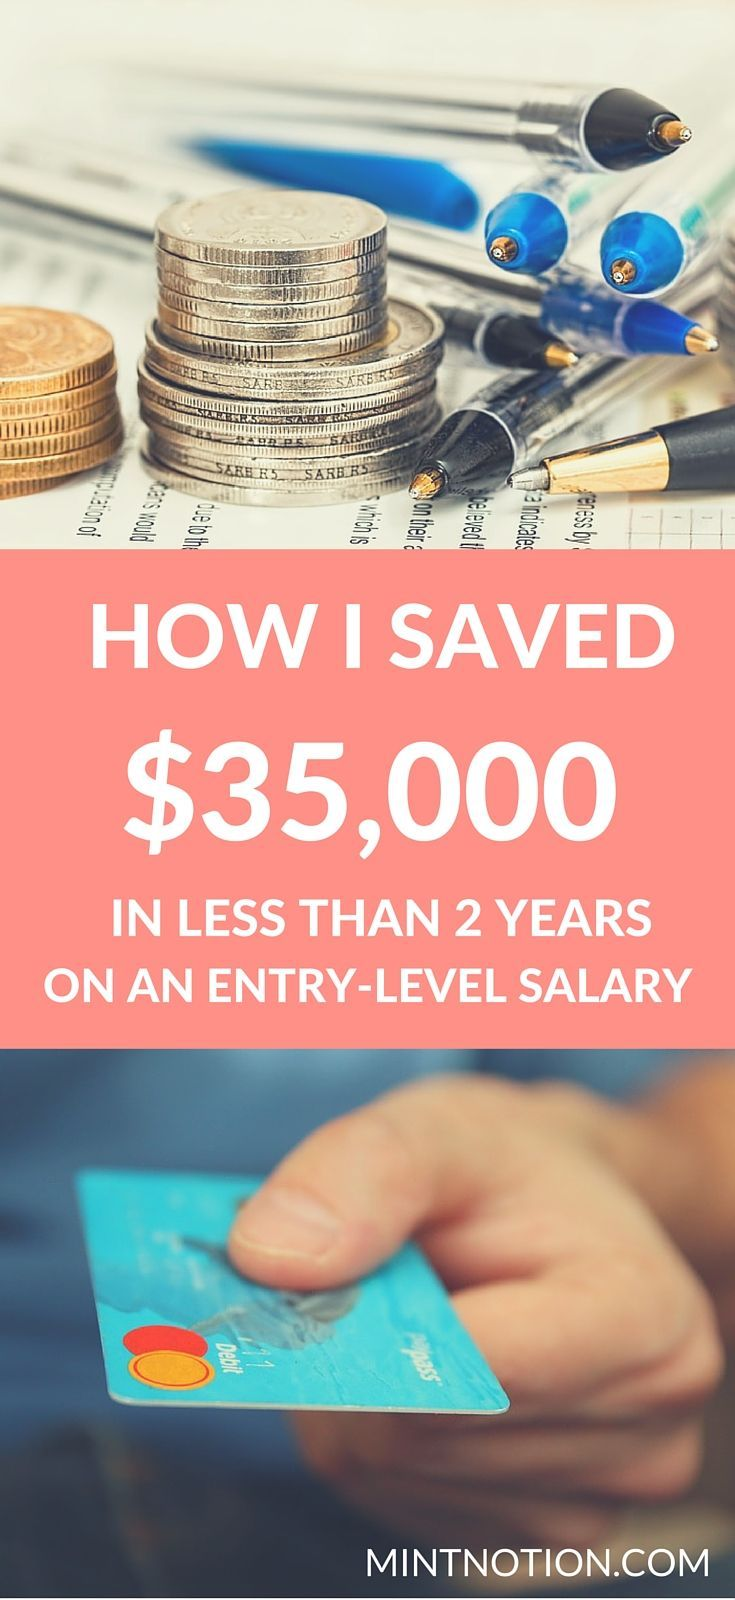 How I saved $35,000 in less than 2 years on an entry-level salary